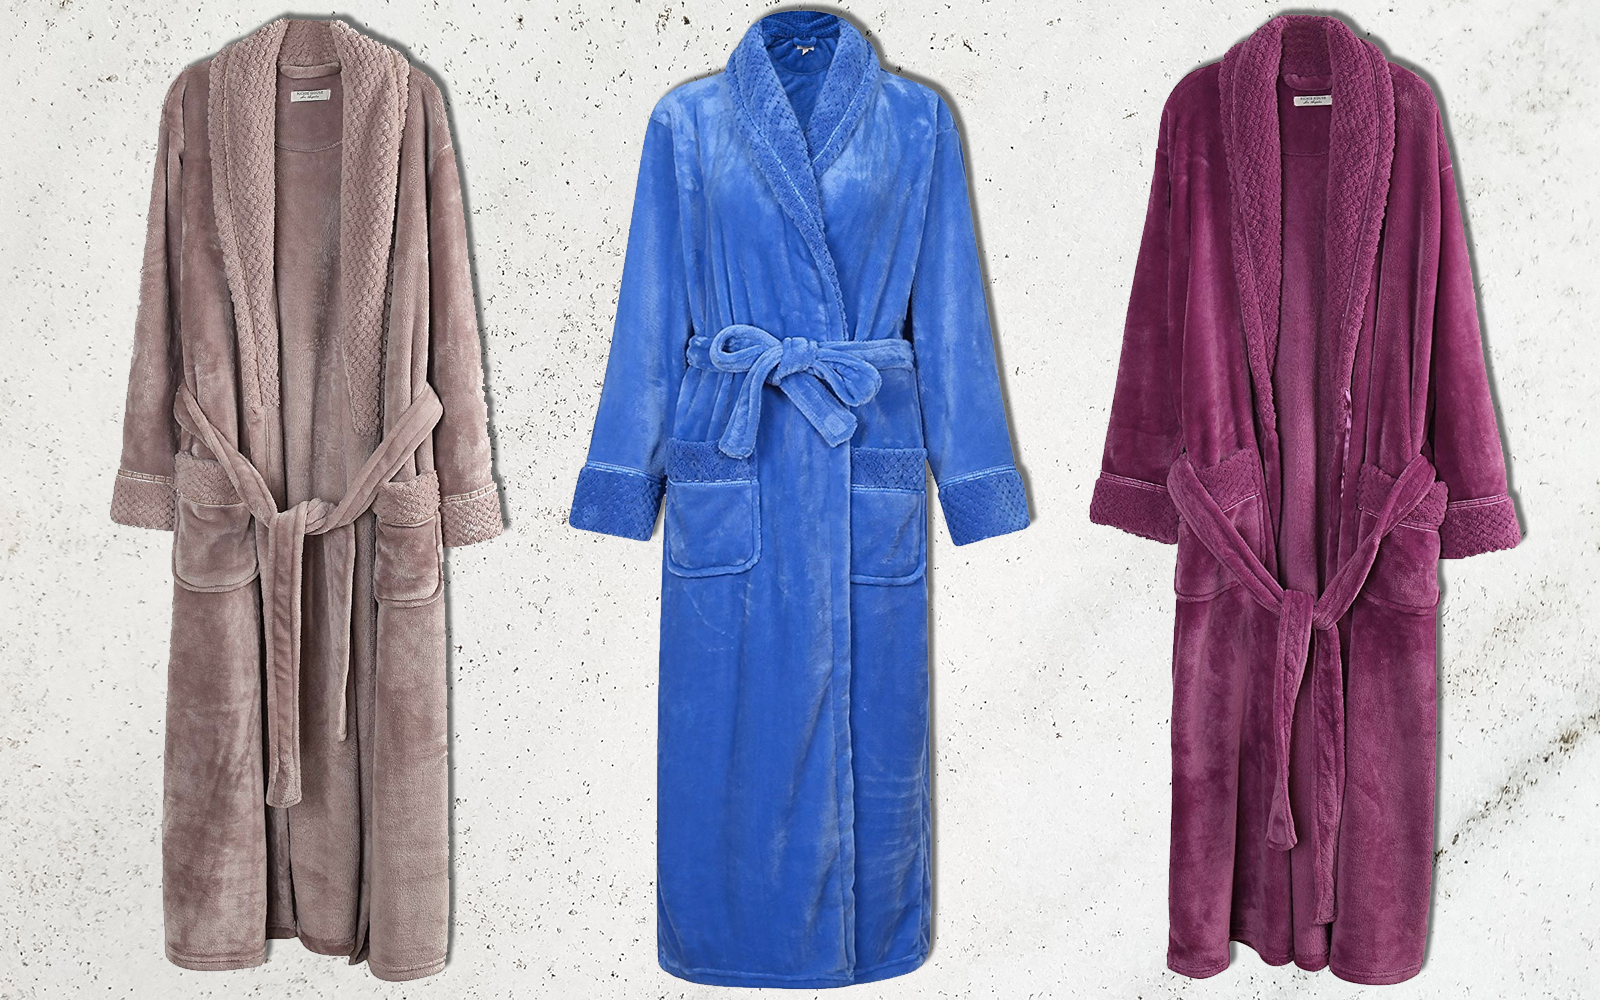 Amazon's Best-selling Bathrobe Has Over 1,800 5-star Reviews